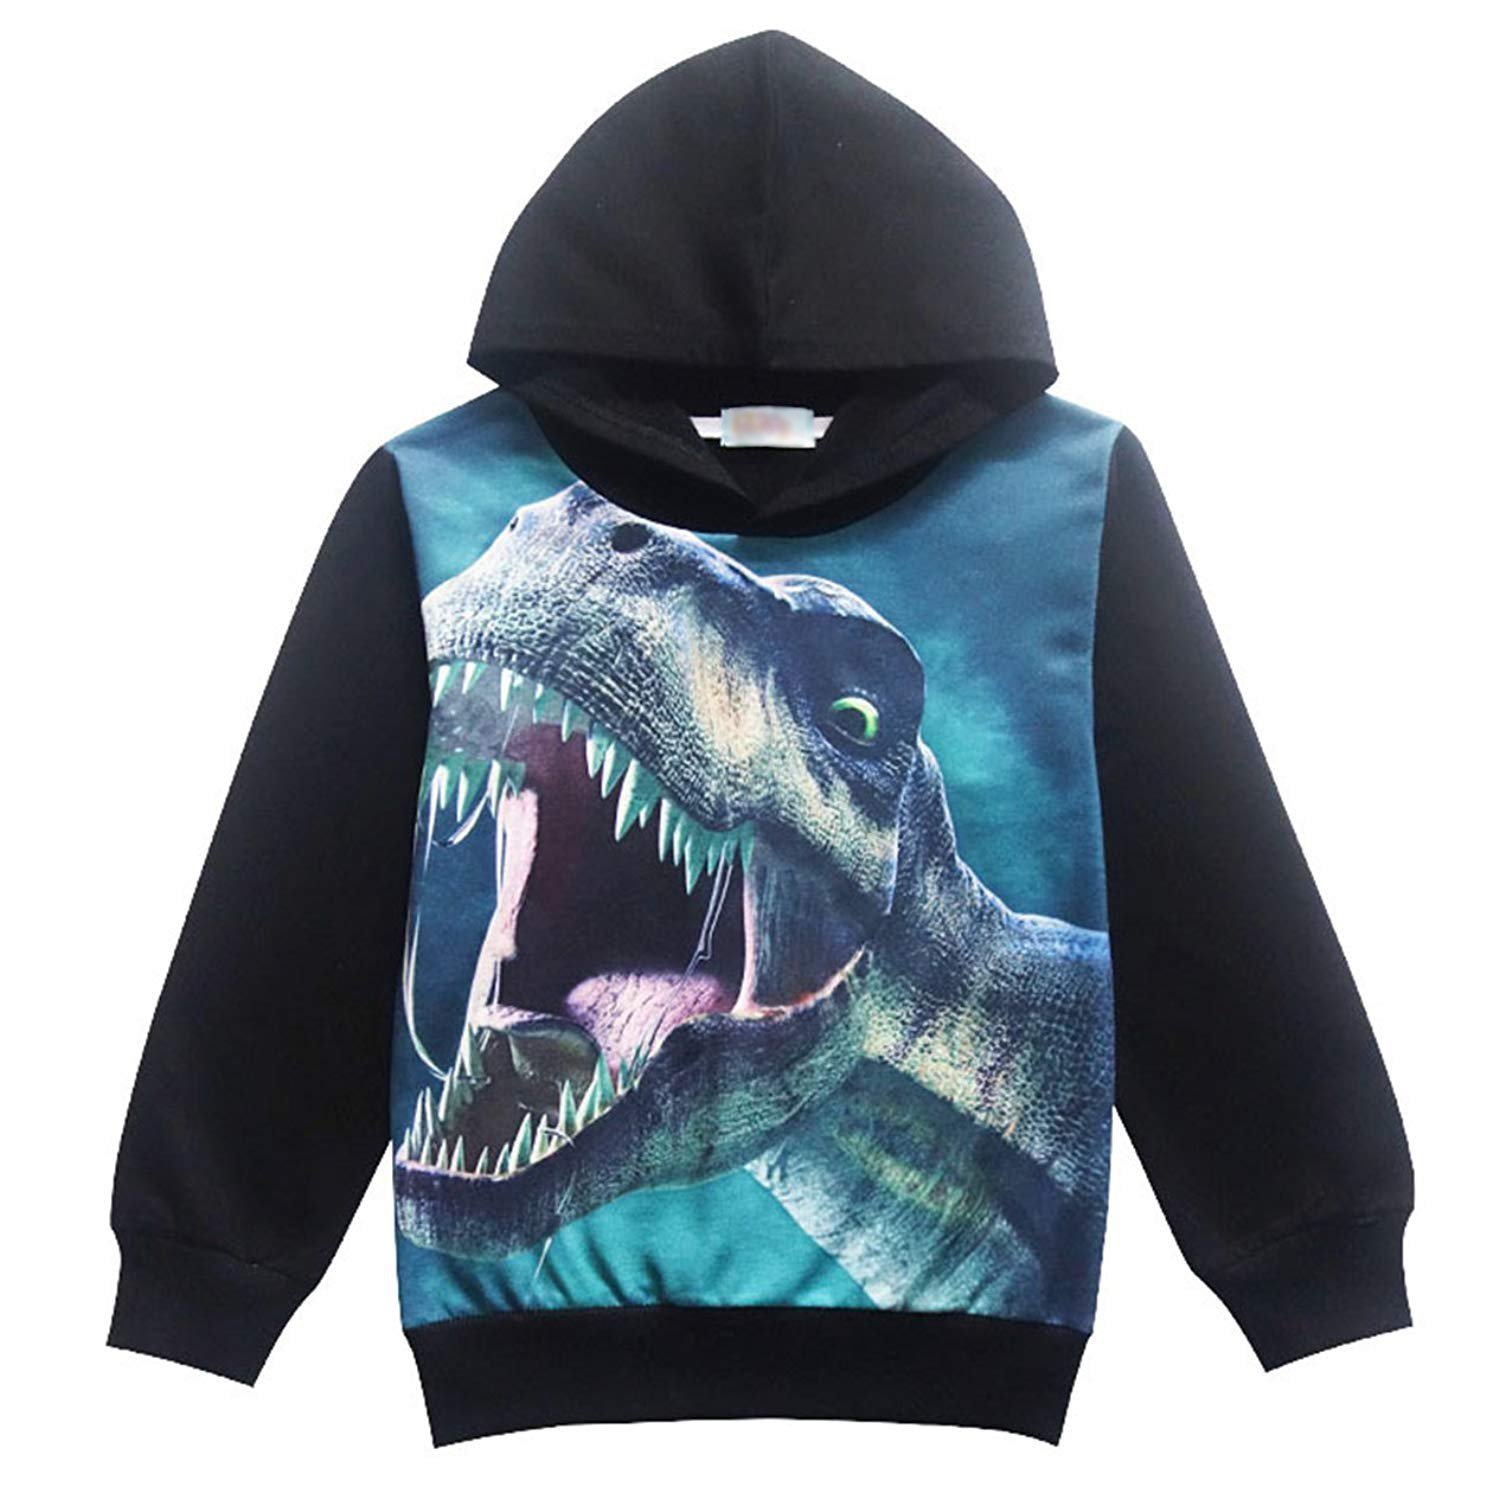 CARGI Toddler Boys Pullover Hoodies,Cool Dinosaur Printing Long Sleeve Hooded Sweatshirts